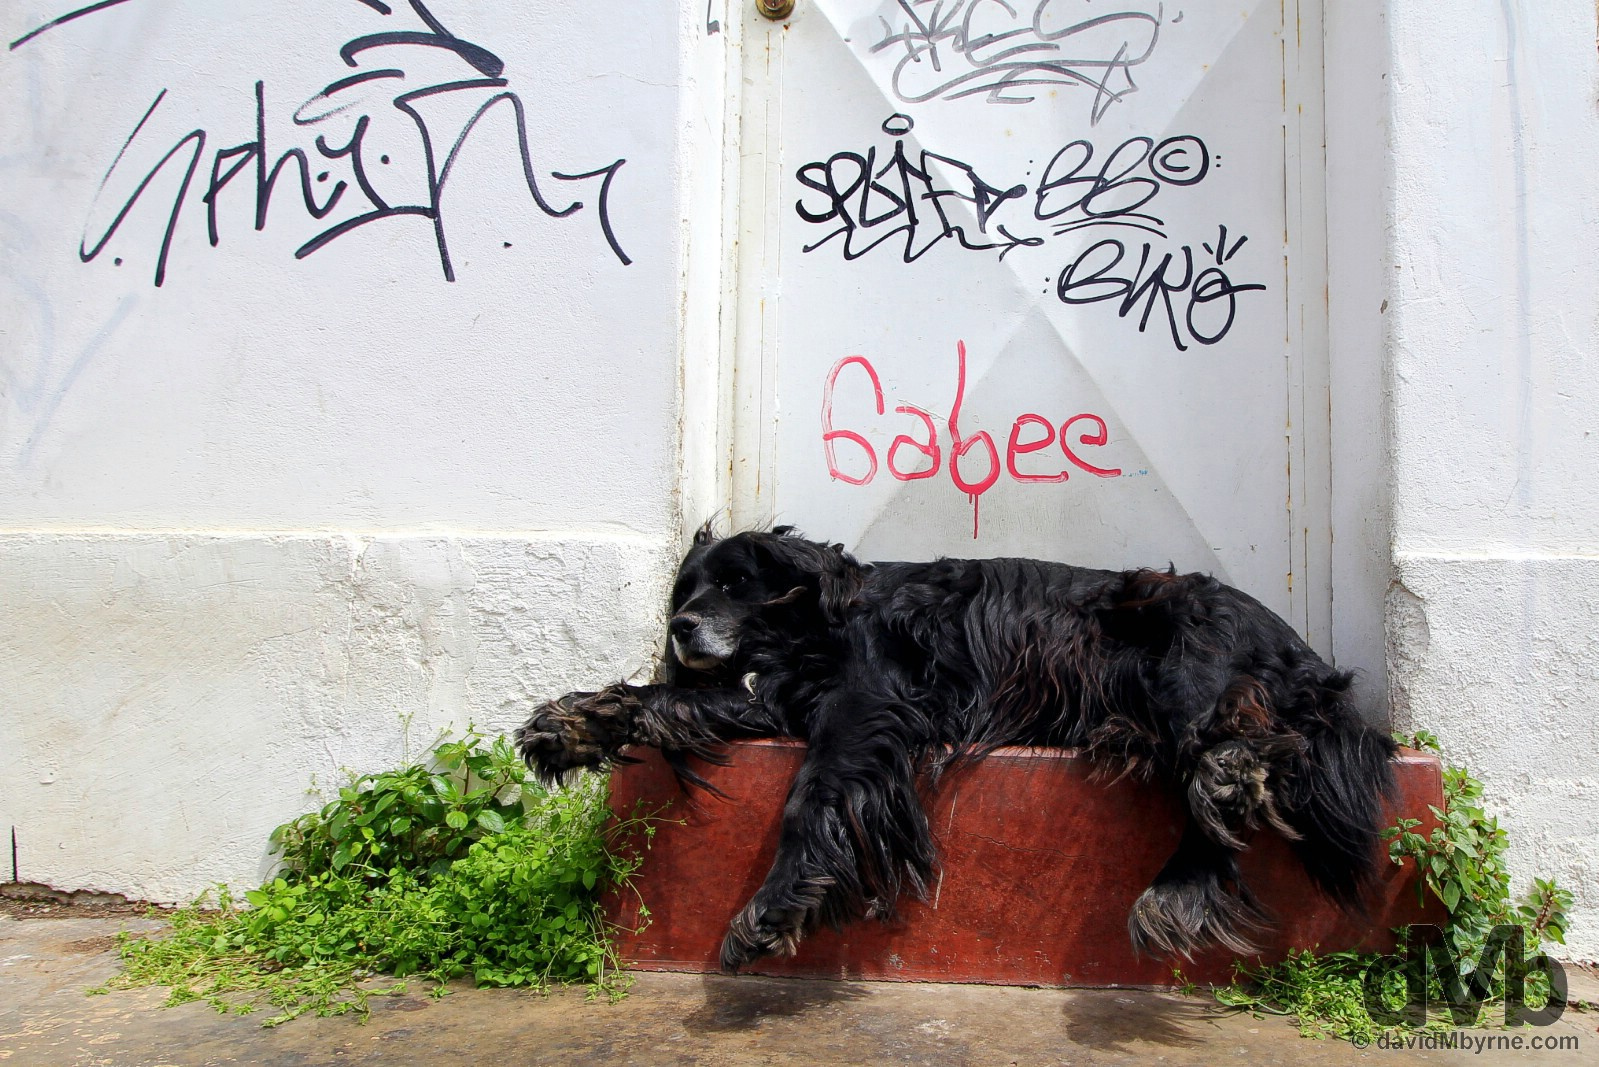 Dog tired in Valparaiso, Chile. October 8, 2015.